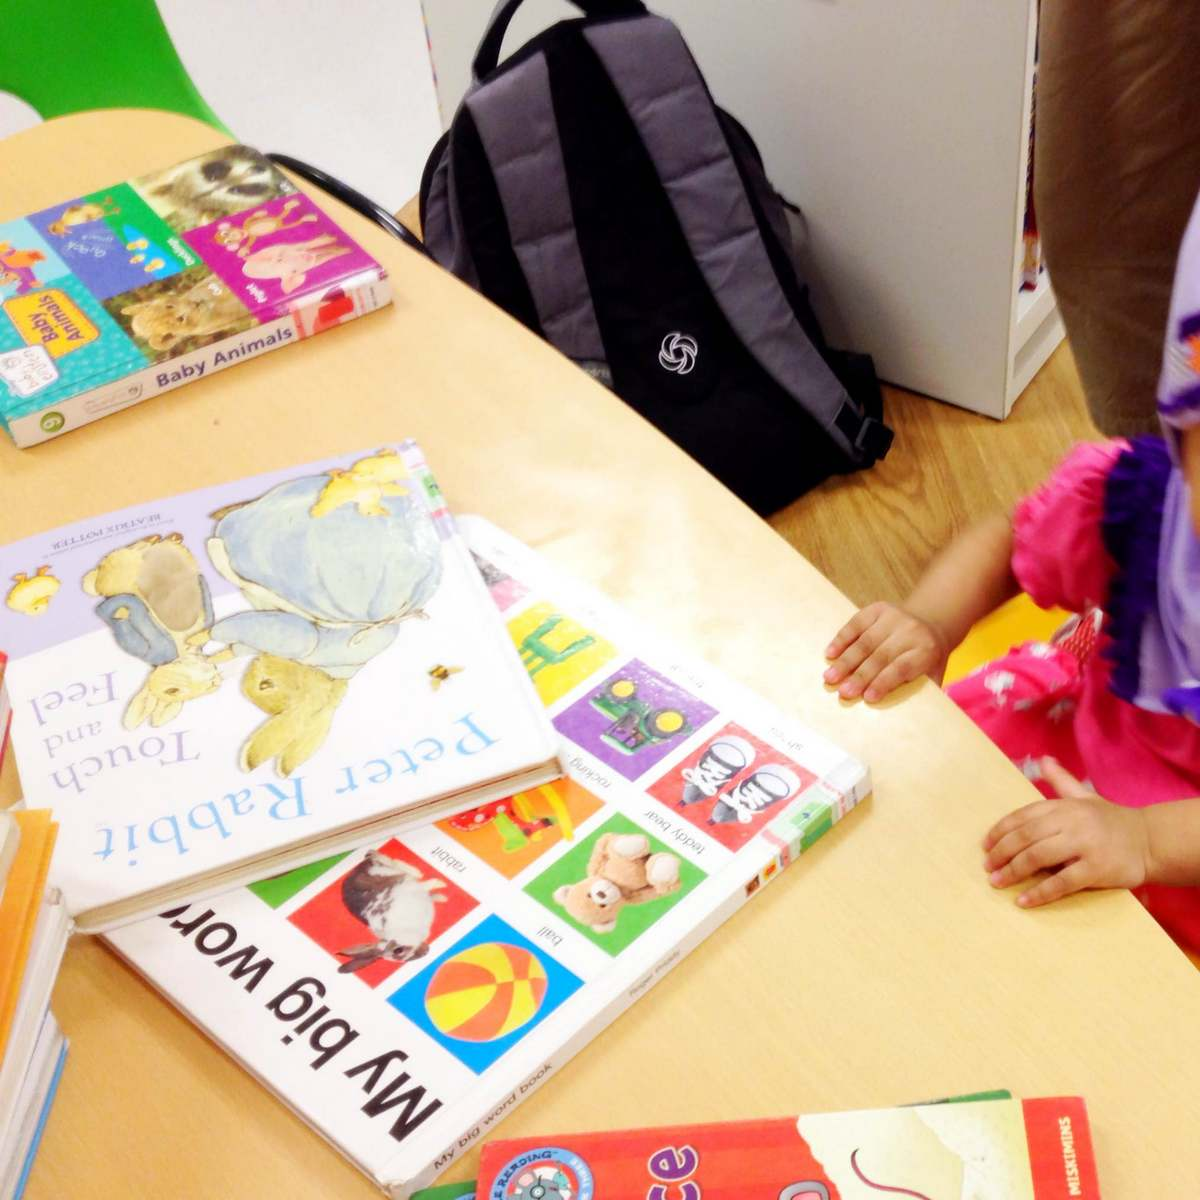 early_literacy_library_jurong_east